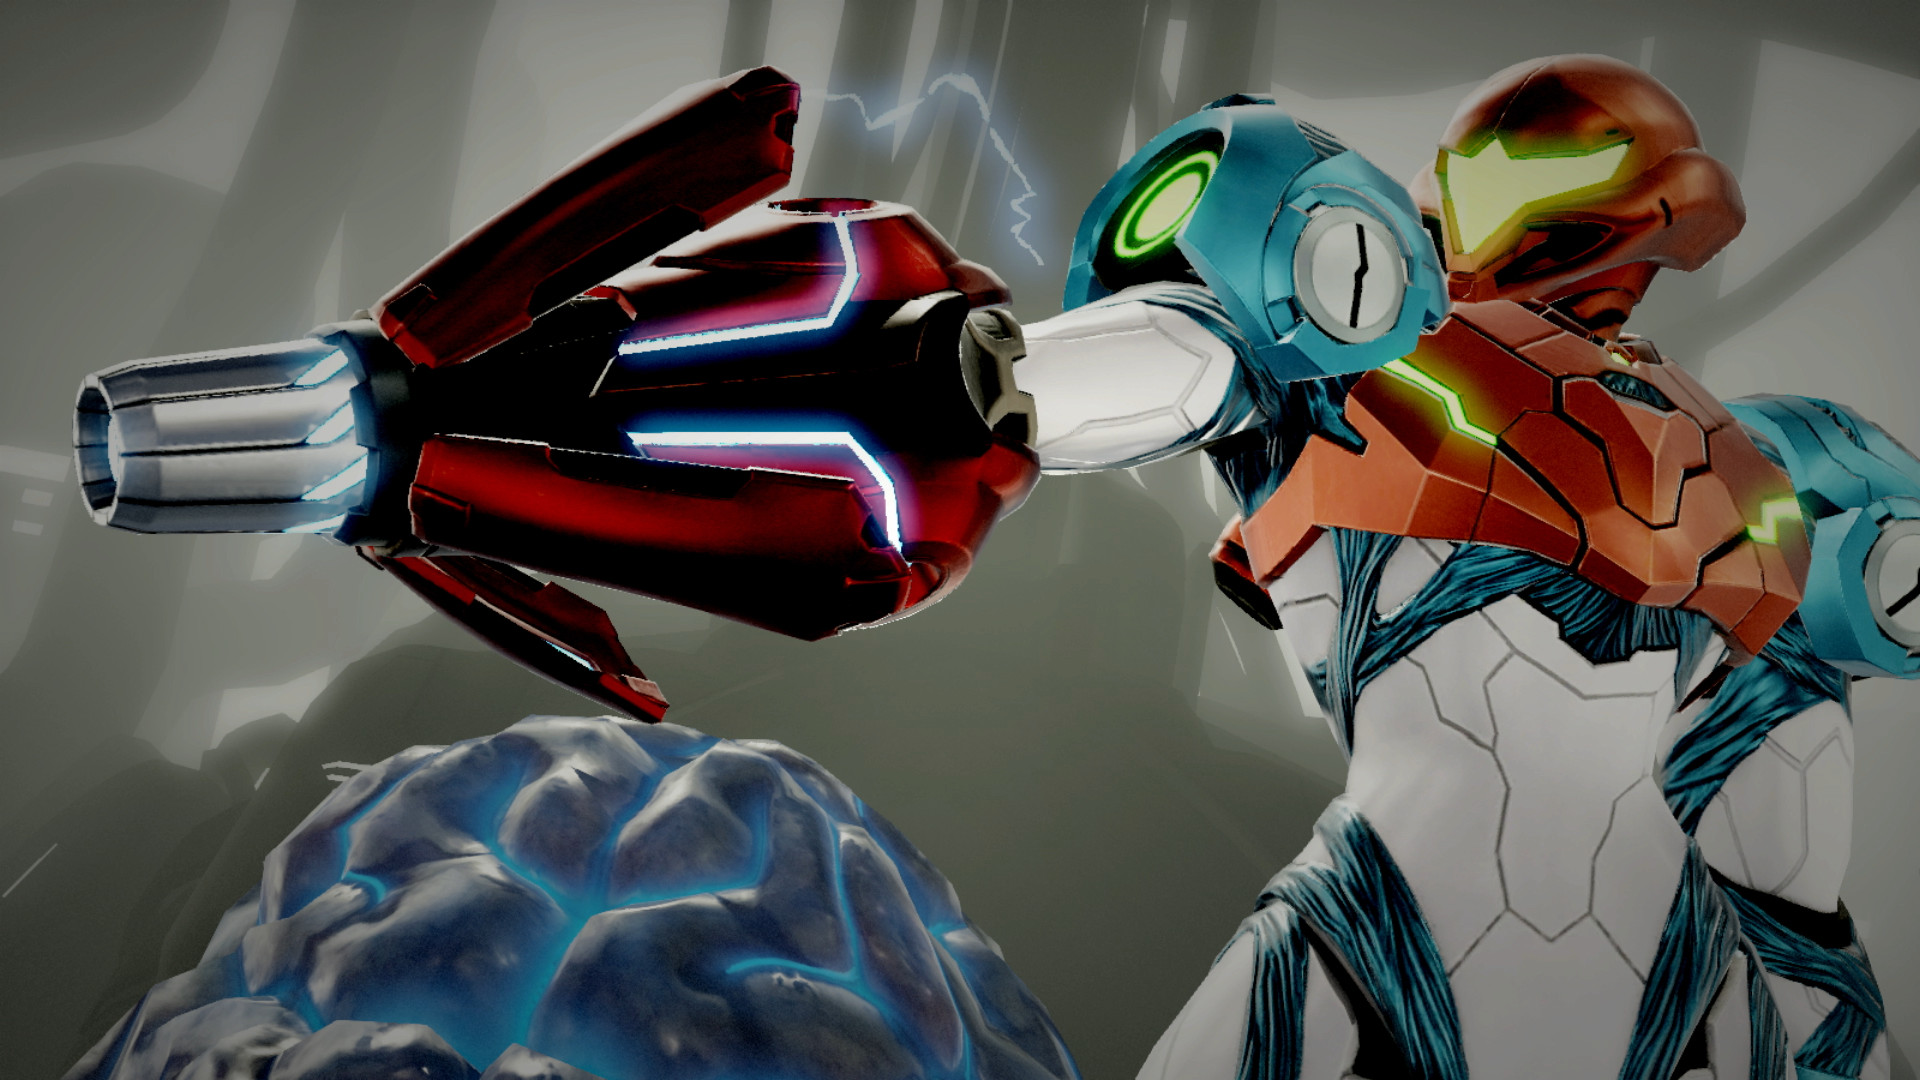 Samus Aran is back and ready to rumble.